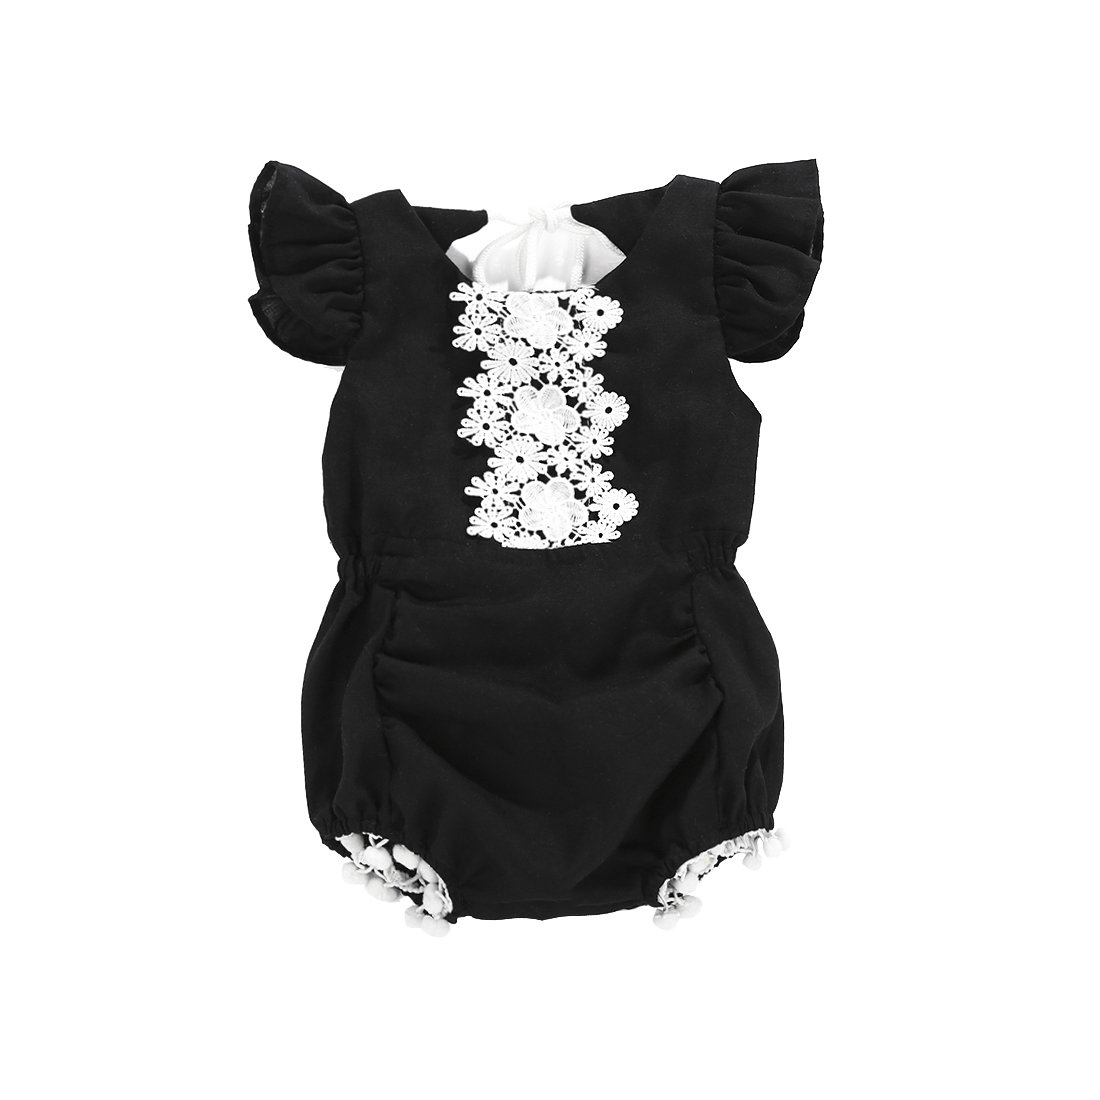 f080fd04f Classic black and white romper Dress up fancy or play in style Tie ...